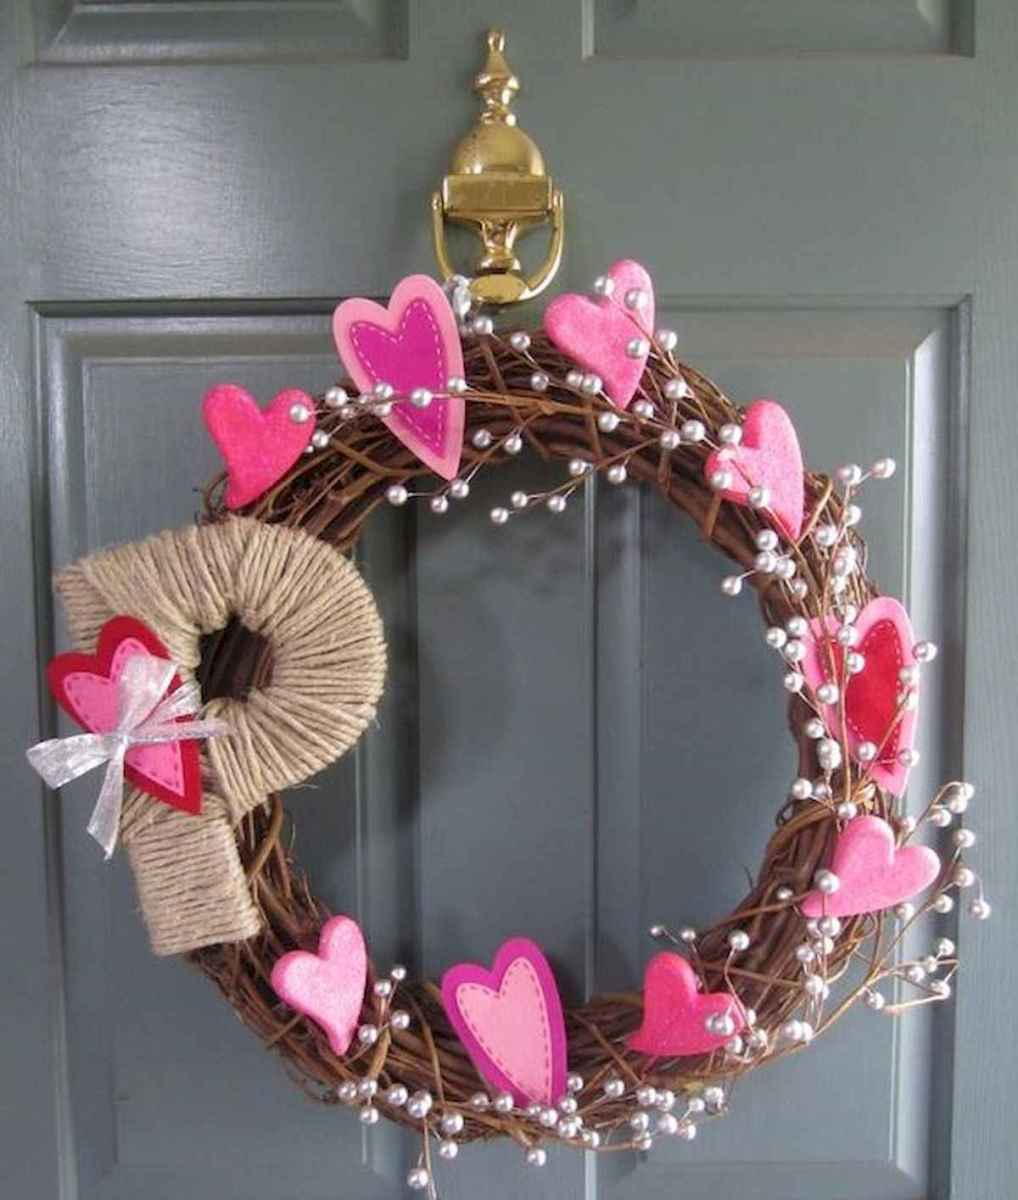 110 easy diy valentines decorations ideas and remodel (25)